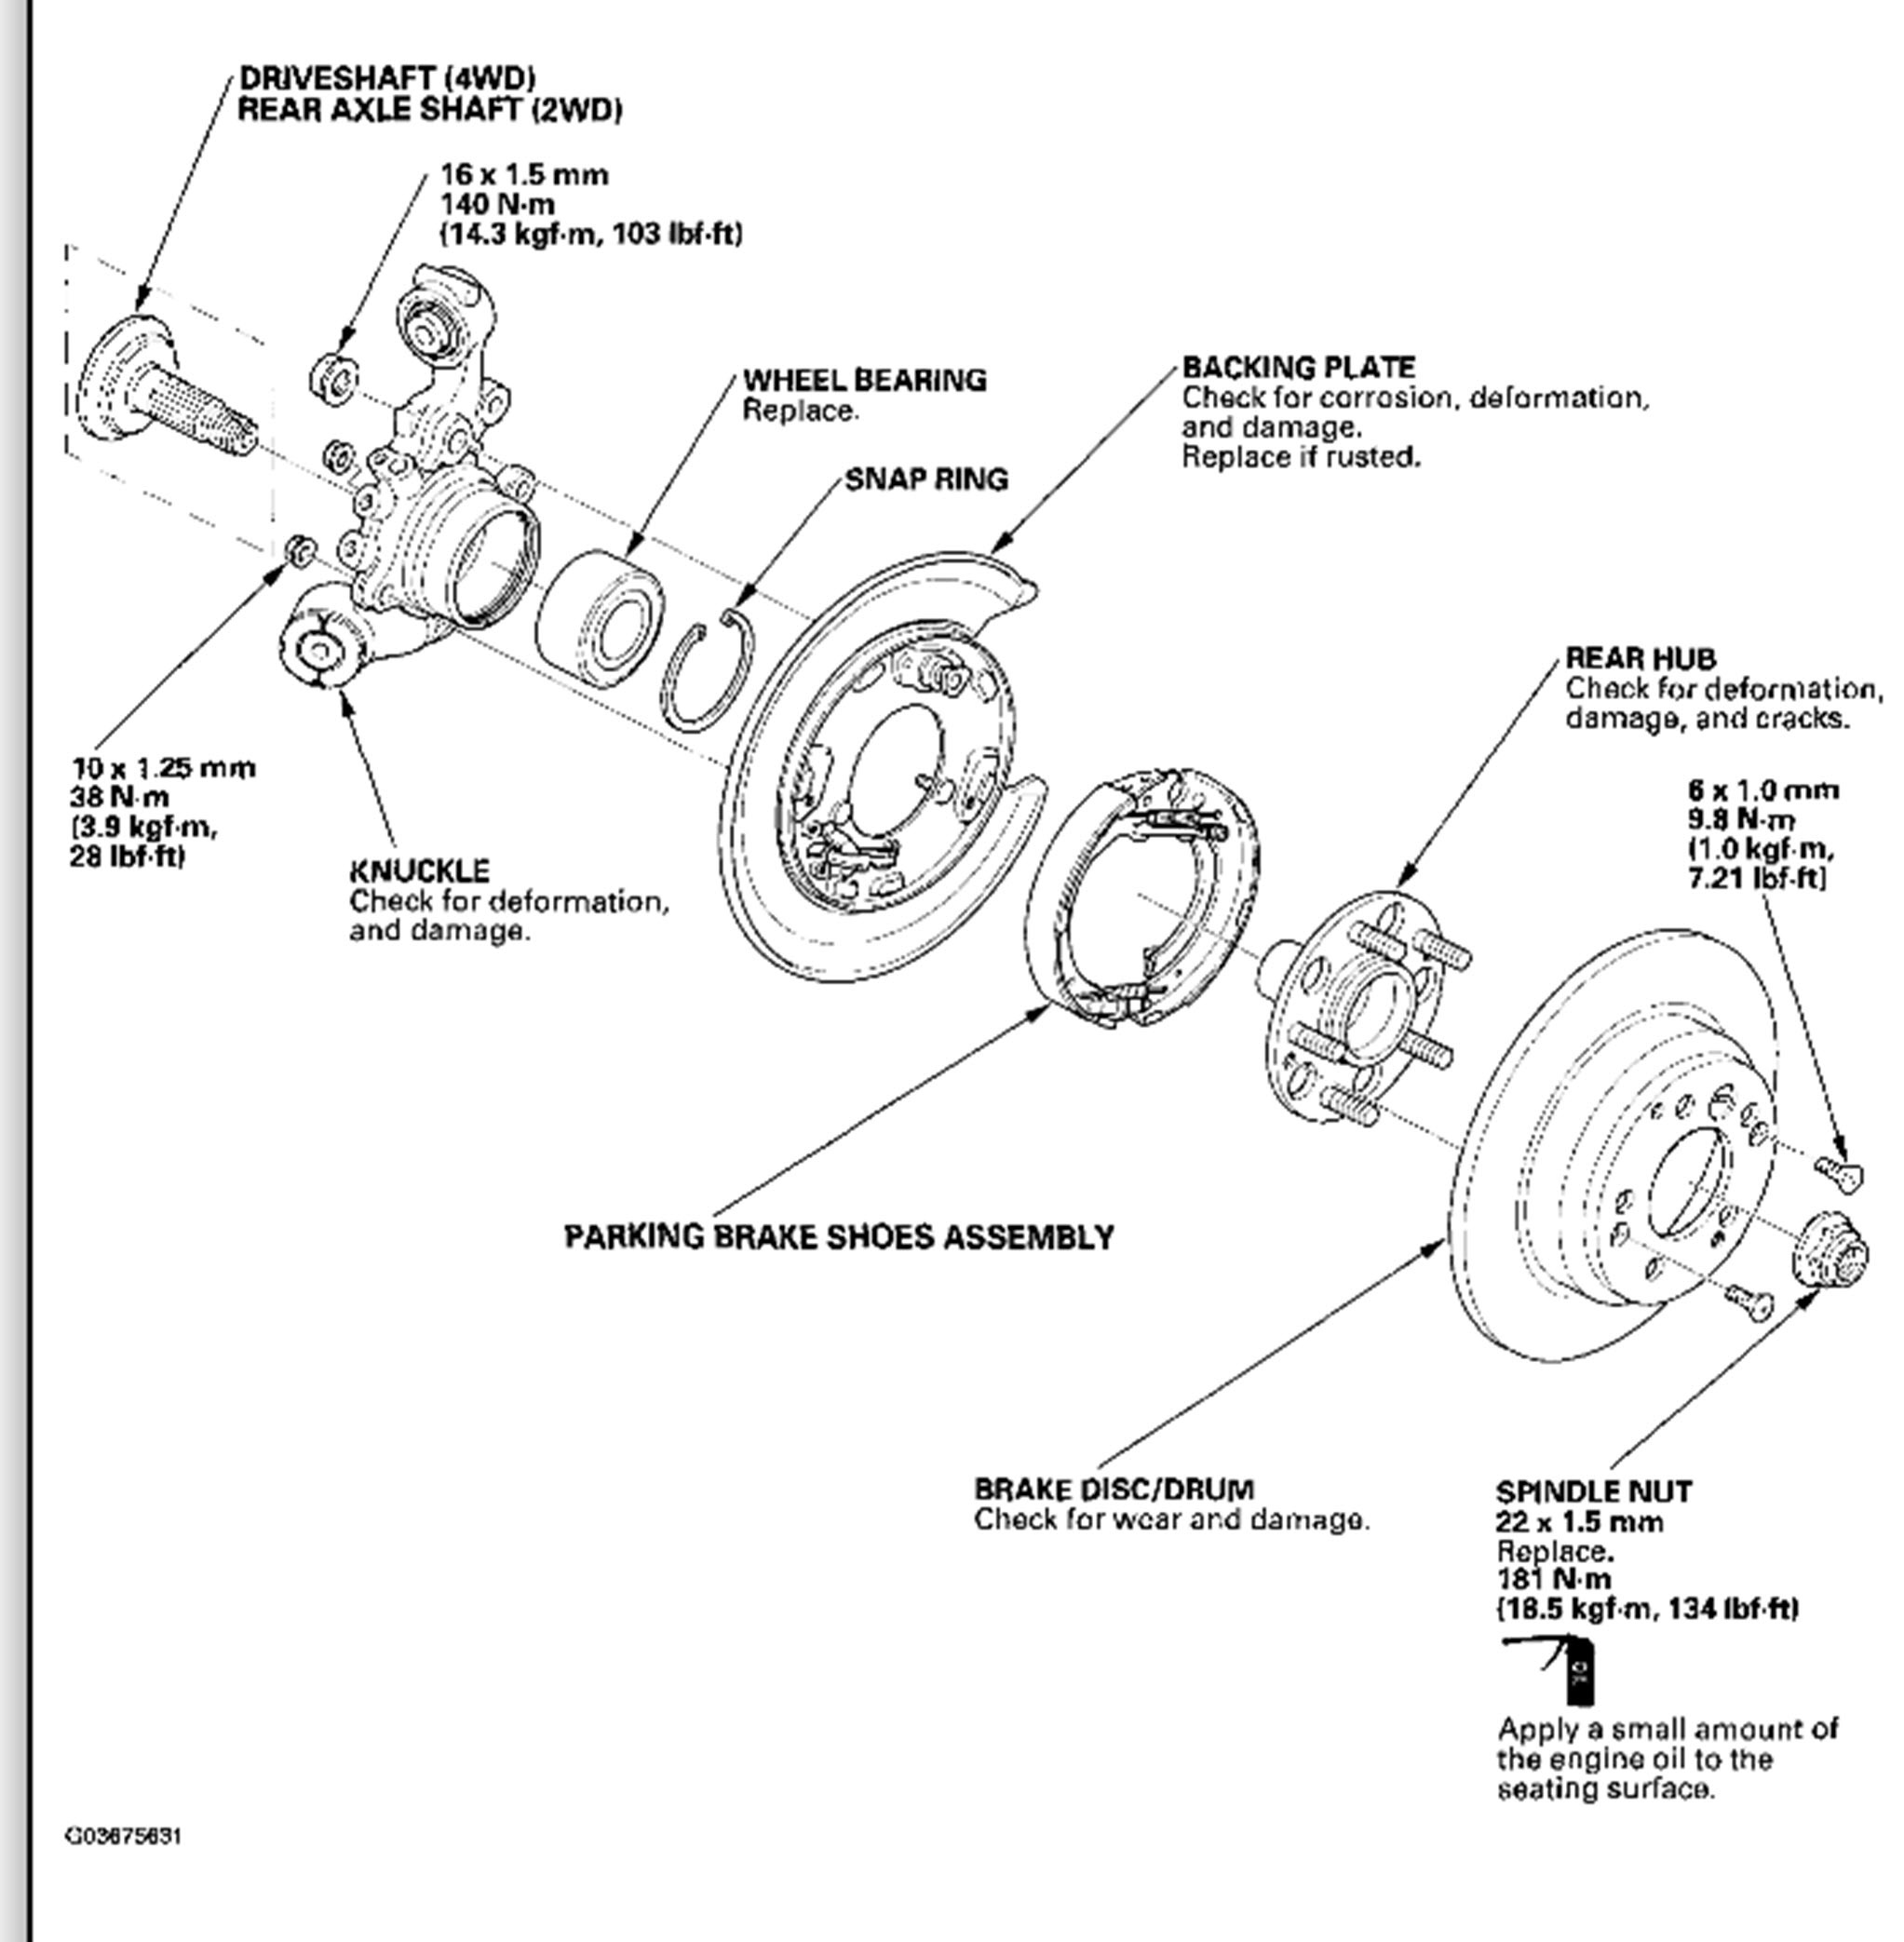 wiring diagram besides 2005 saab 9 3 headlight 2005 jeep wrangler headlight diagram wiring